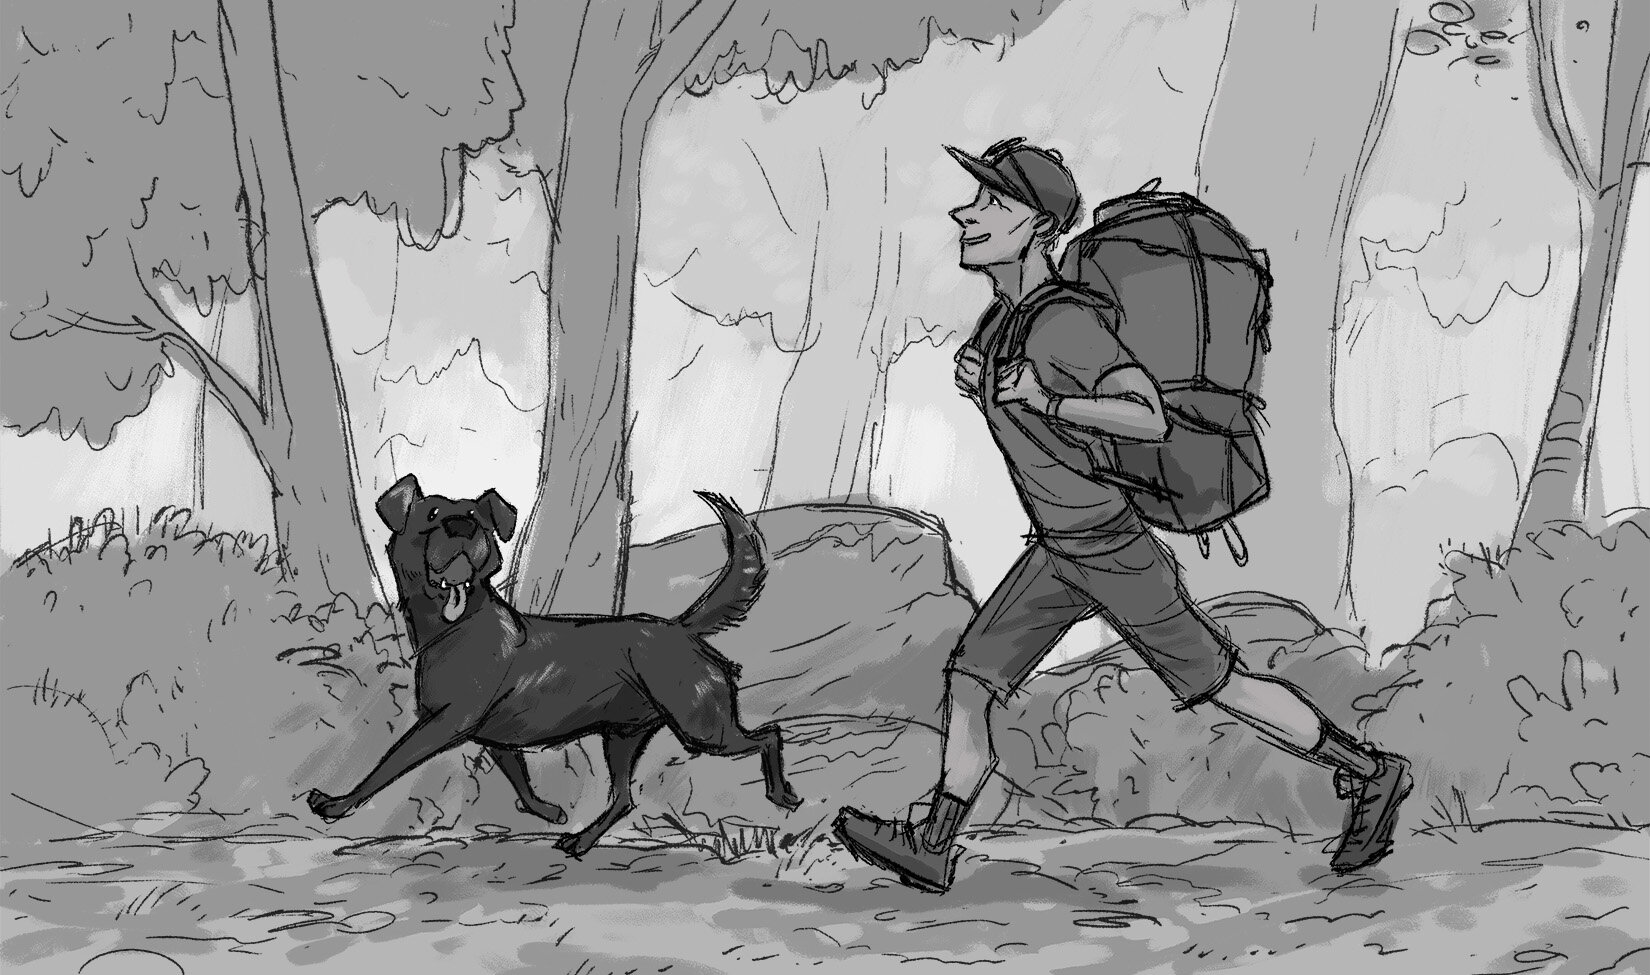 Marce commission 001 - man and dog - web 004.jpg